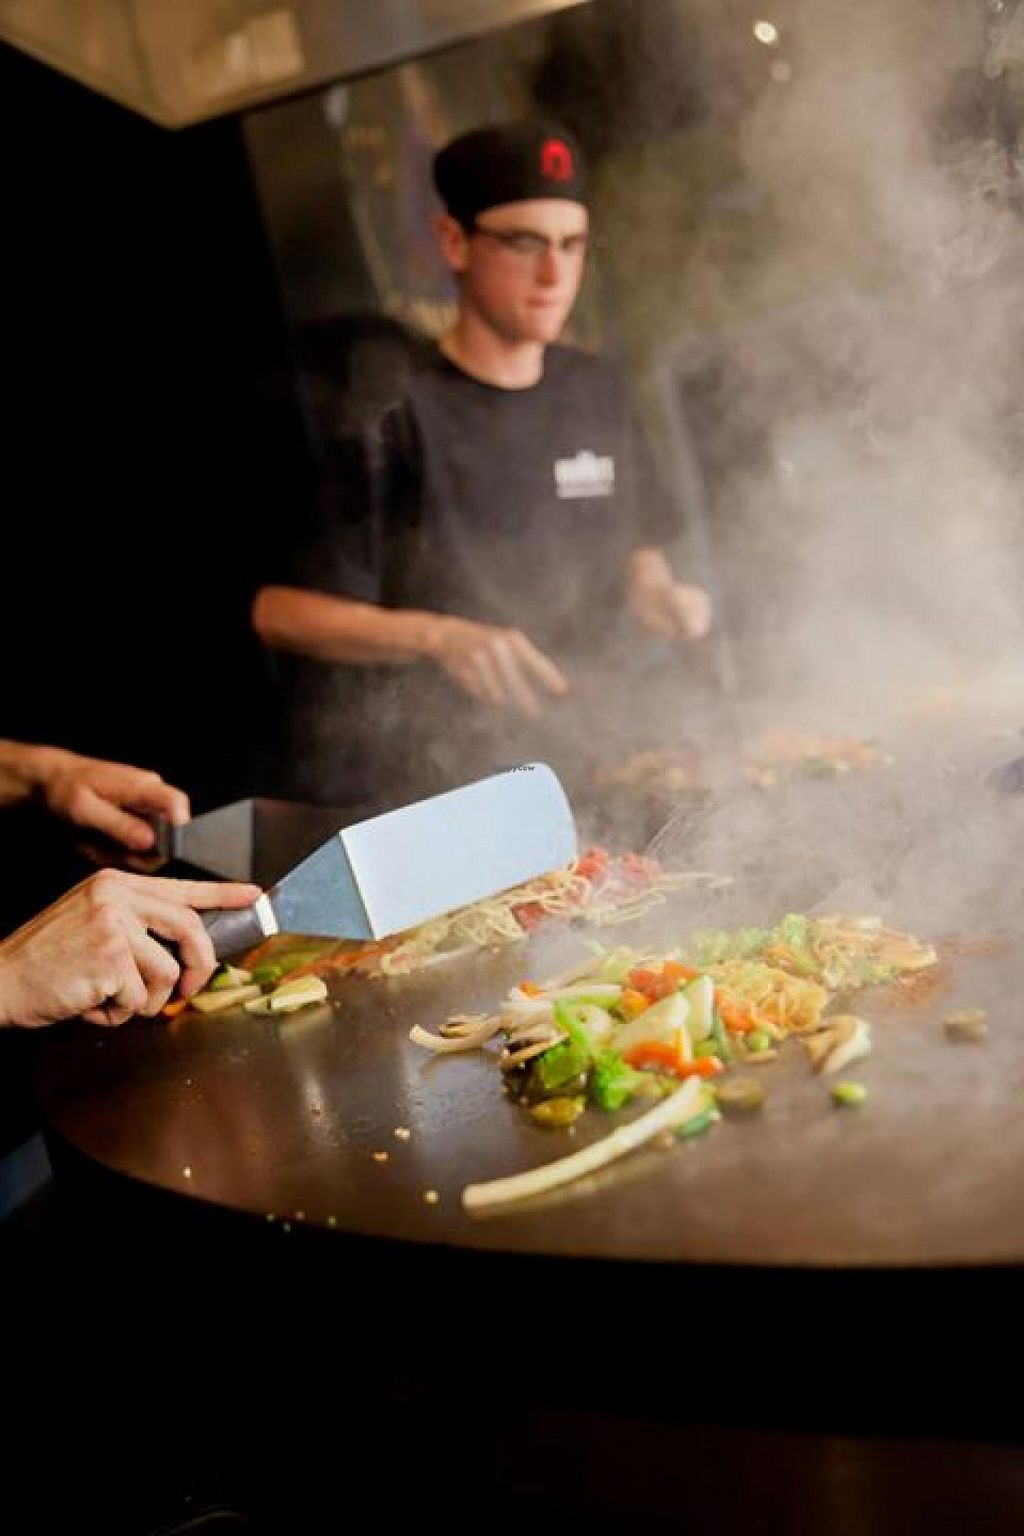 """Photo of HuHot Mongolian Grill  by <a href=""""/members/profile/community"""">community</a> <br/>HuHot Mongolian Grill <br/> March 13, 2014  - <a href='/contact/abuse/image/45831/65838'>Report</a>"""